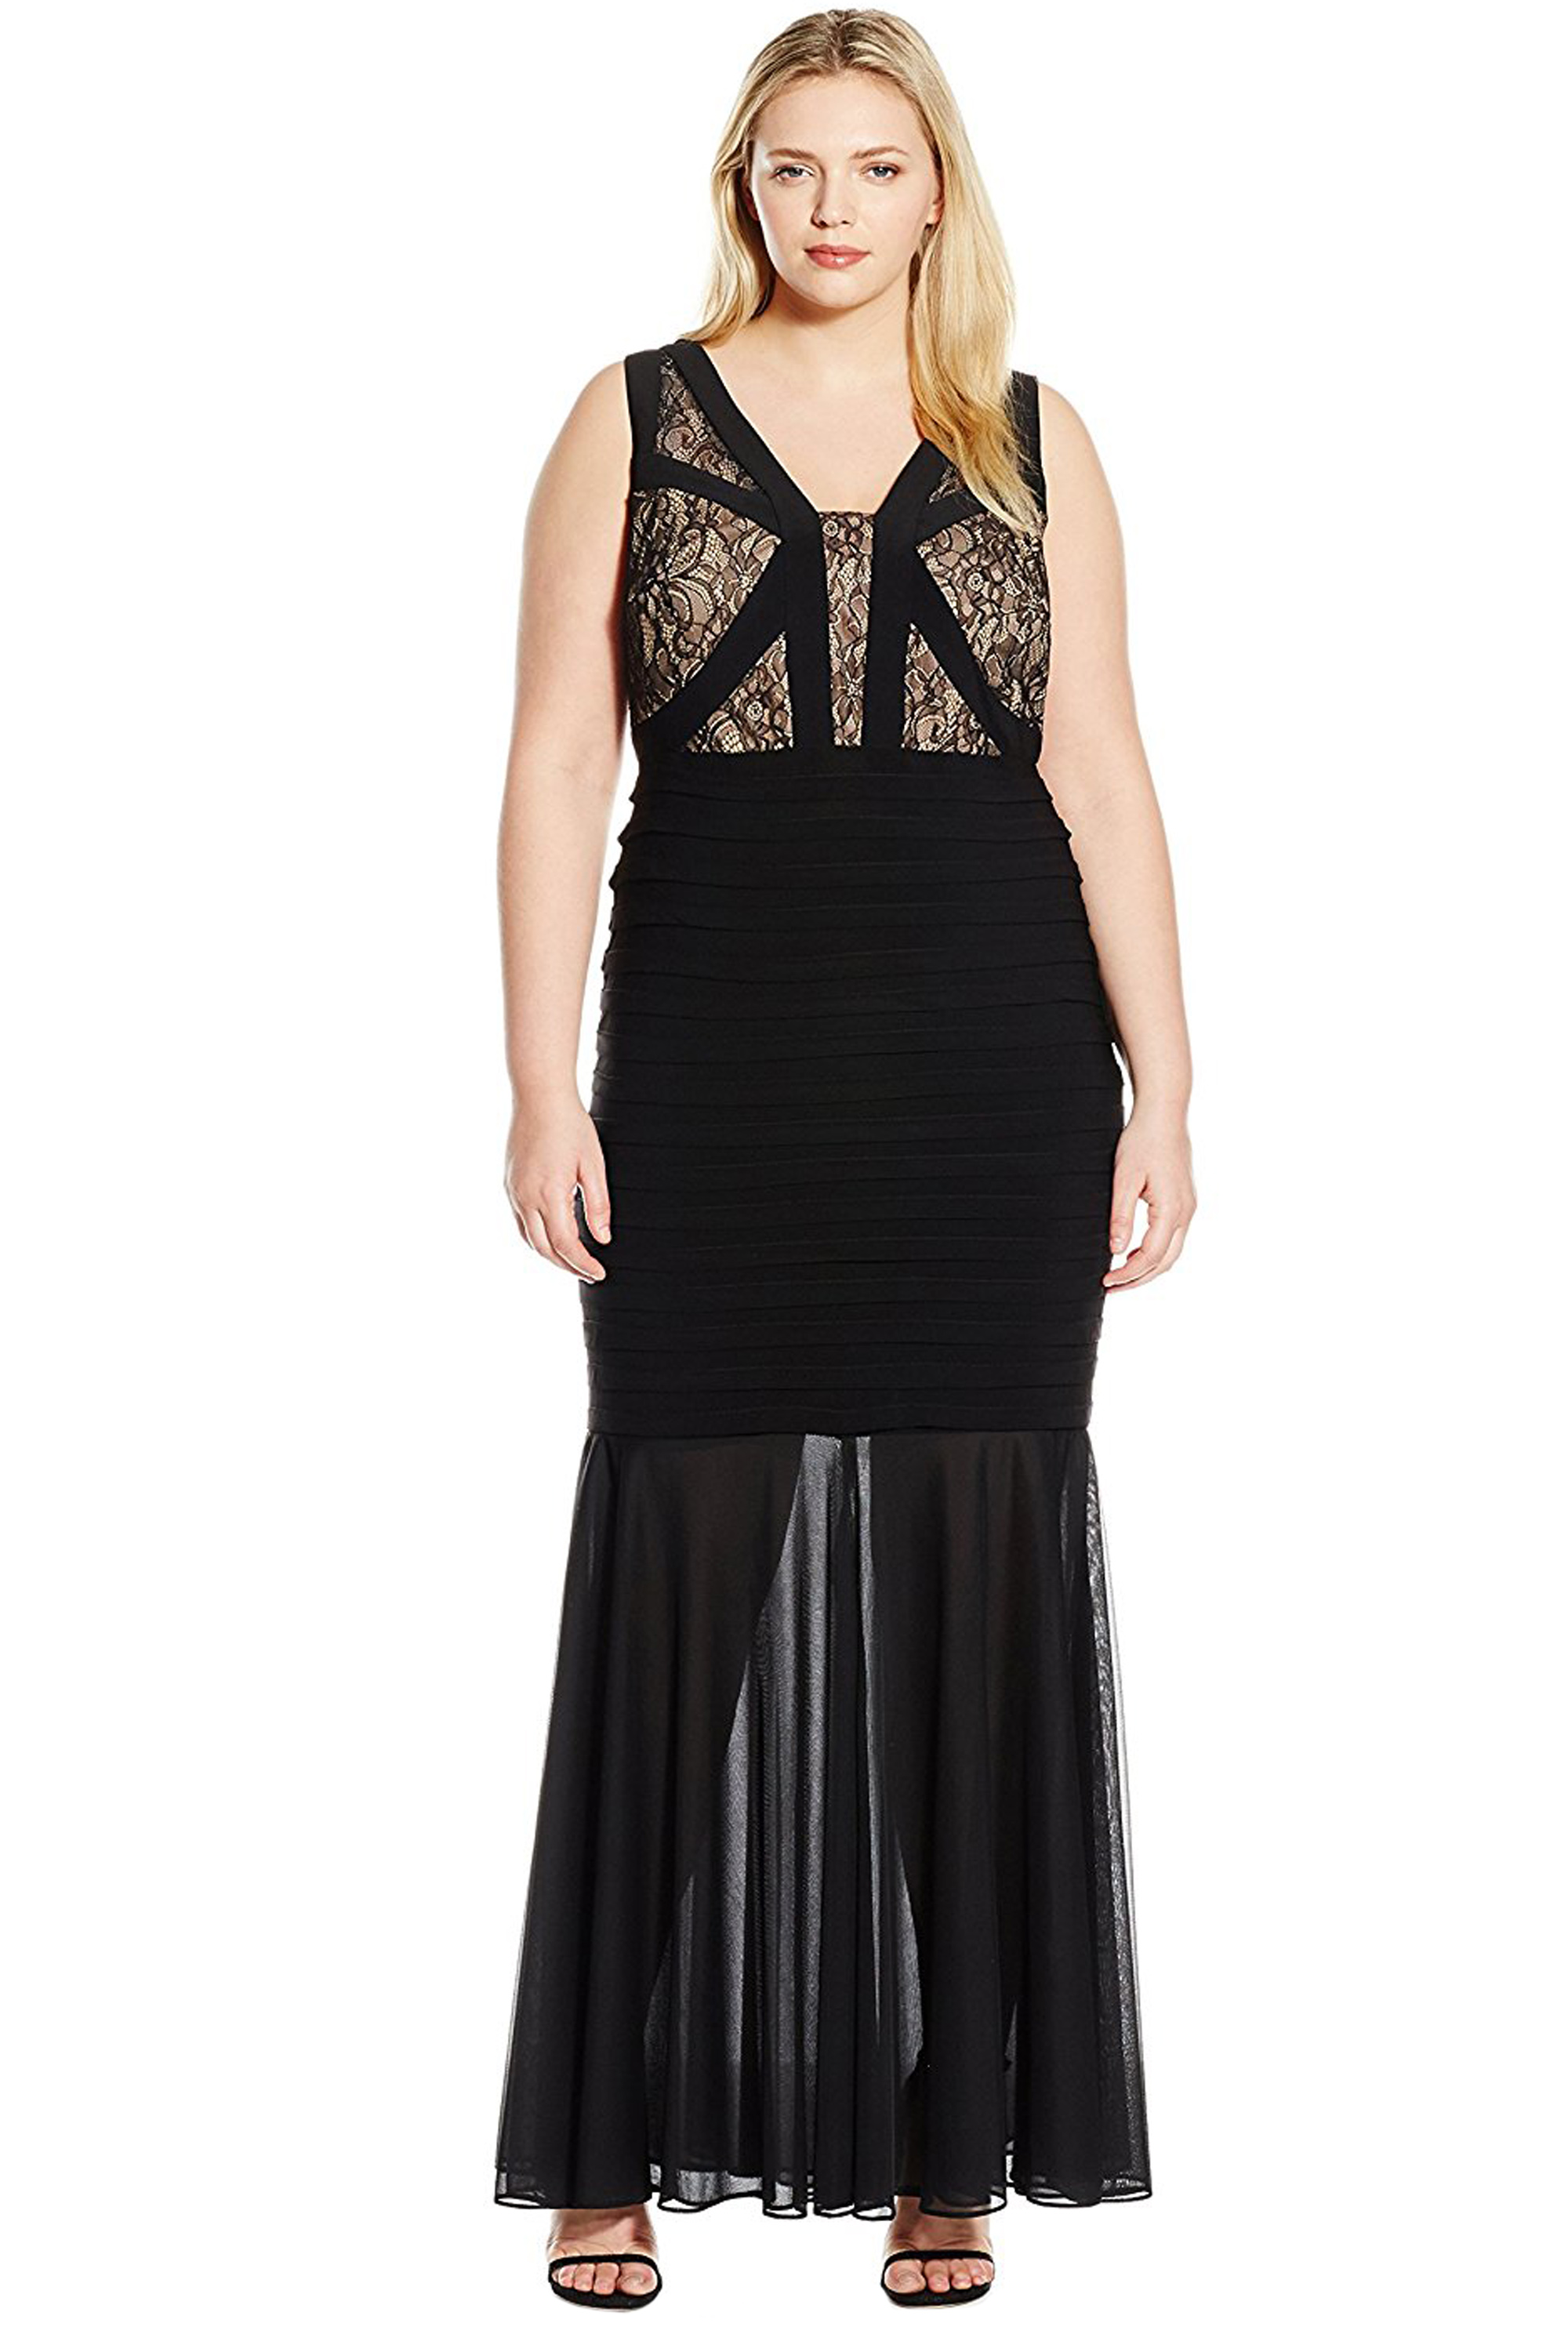 ff86256f Xscape Plus Size Black Lace Detail Shutter V-Neck Evening Gown Dress ...